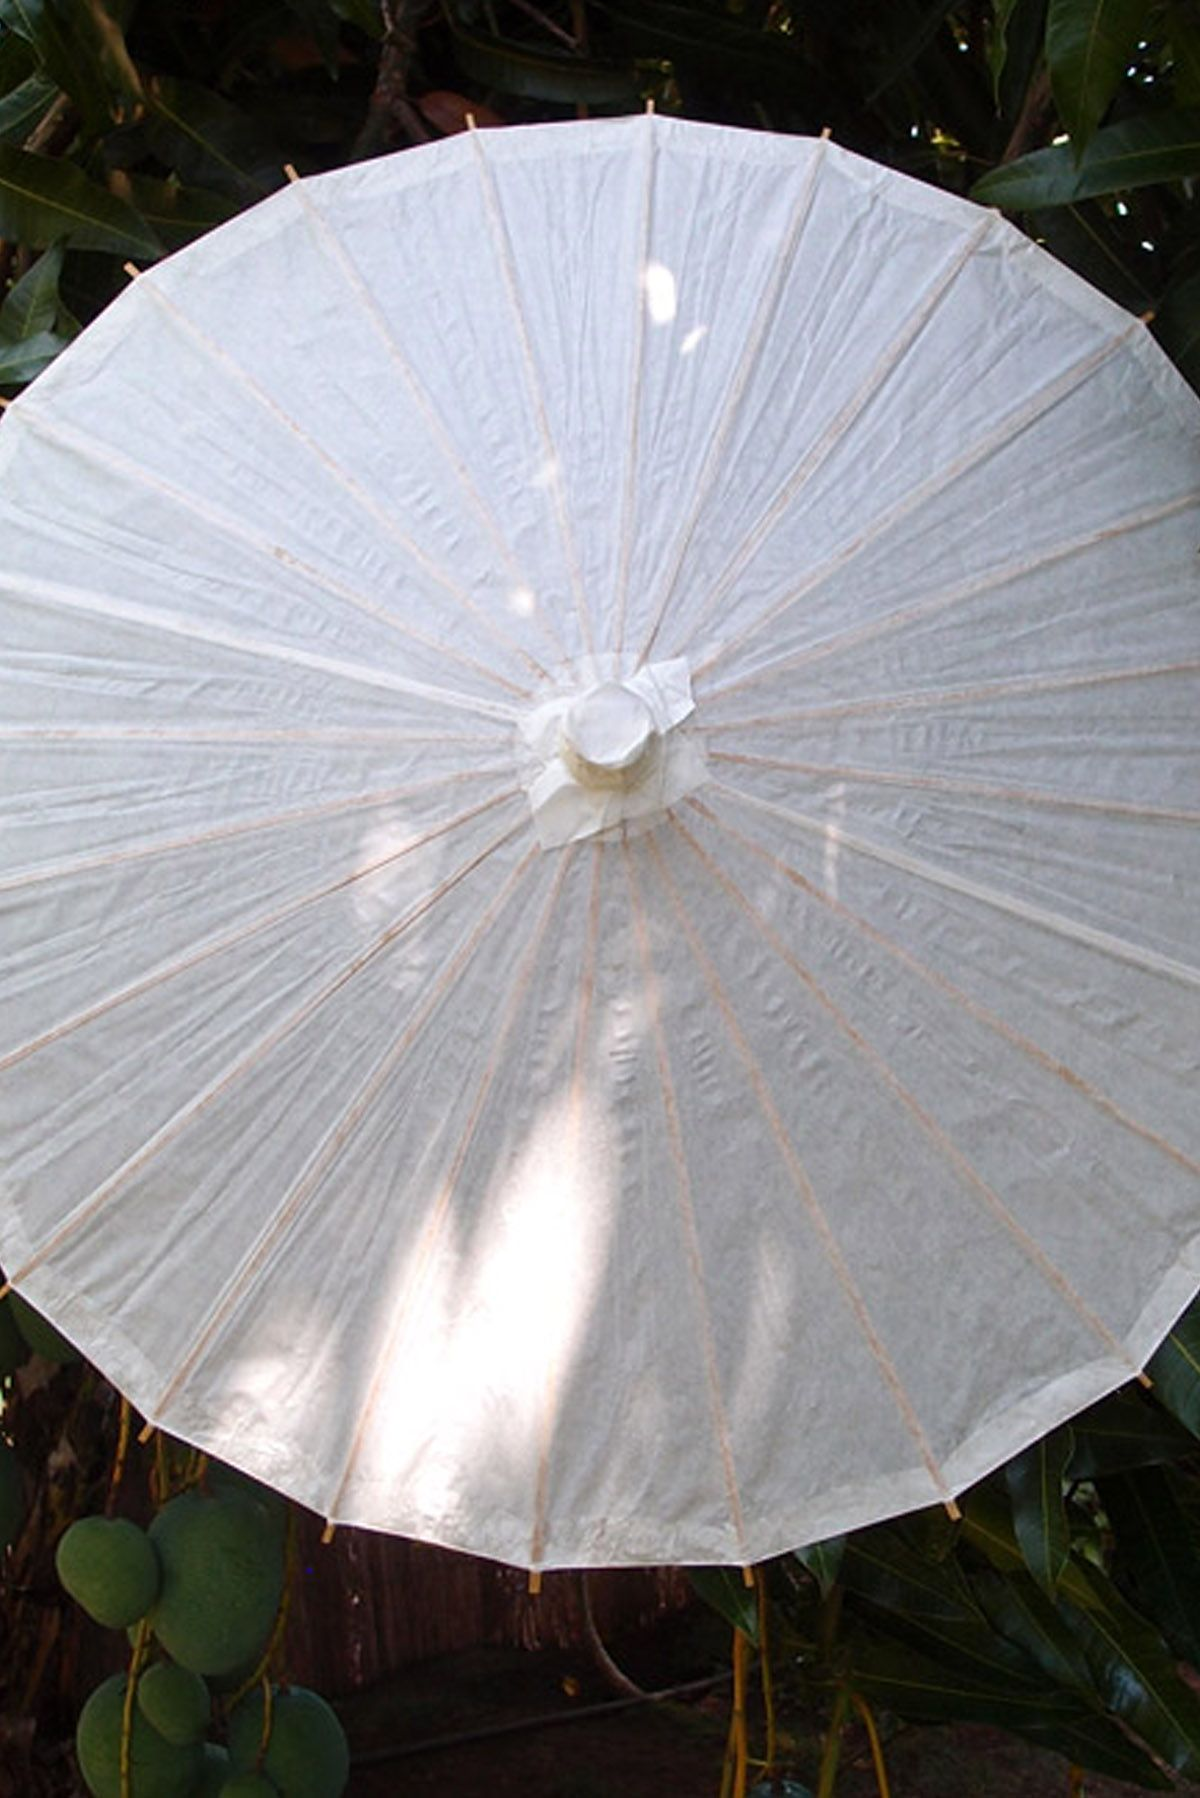 945aca97e 5.49 SALE PRICE! Offer white paper parasols to your guests as a creative  shield from the sun at an outdoor event or use these white parasols as  decorations.